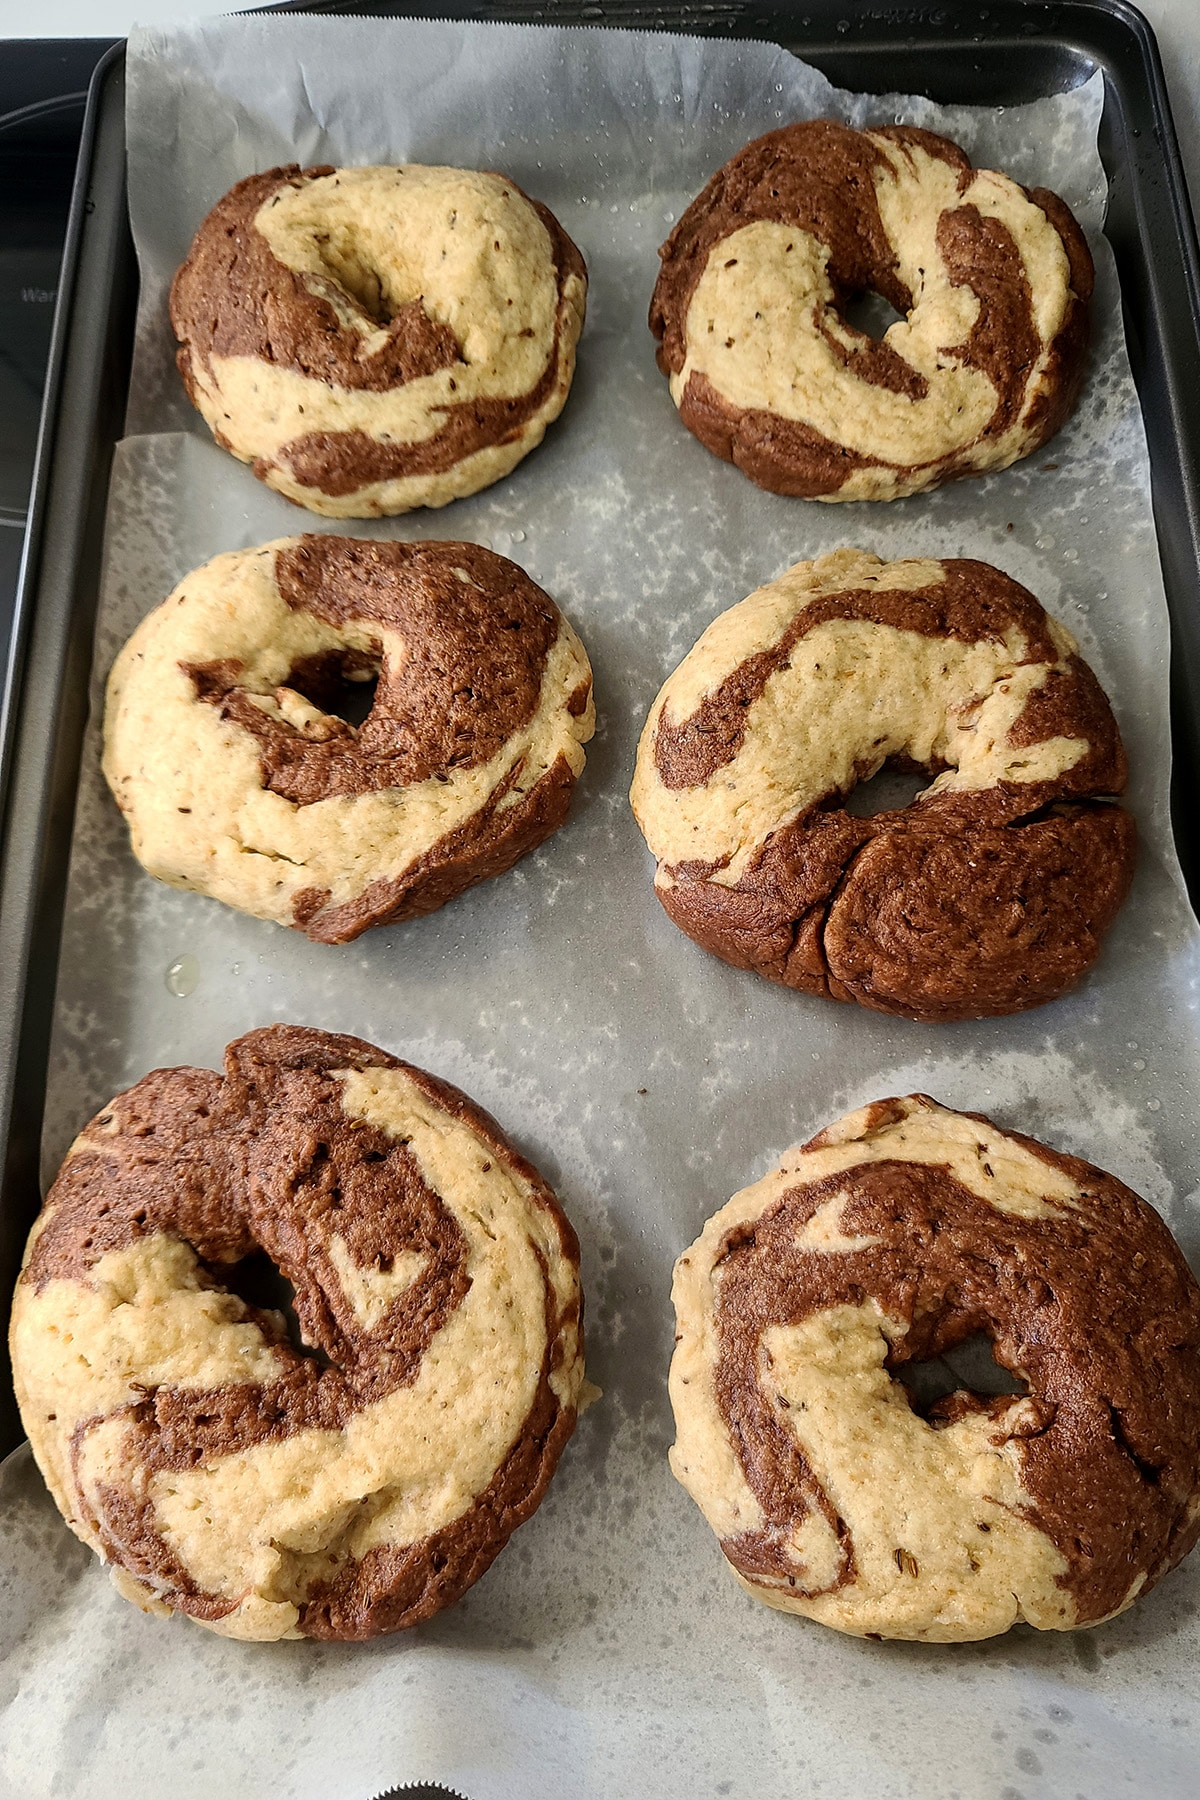 6 unbaked marbled rye bagels on a parchment lined baking sheet.